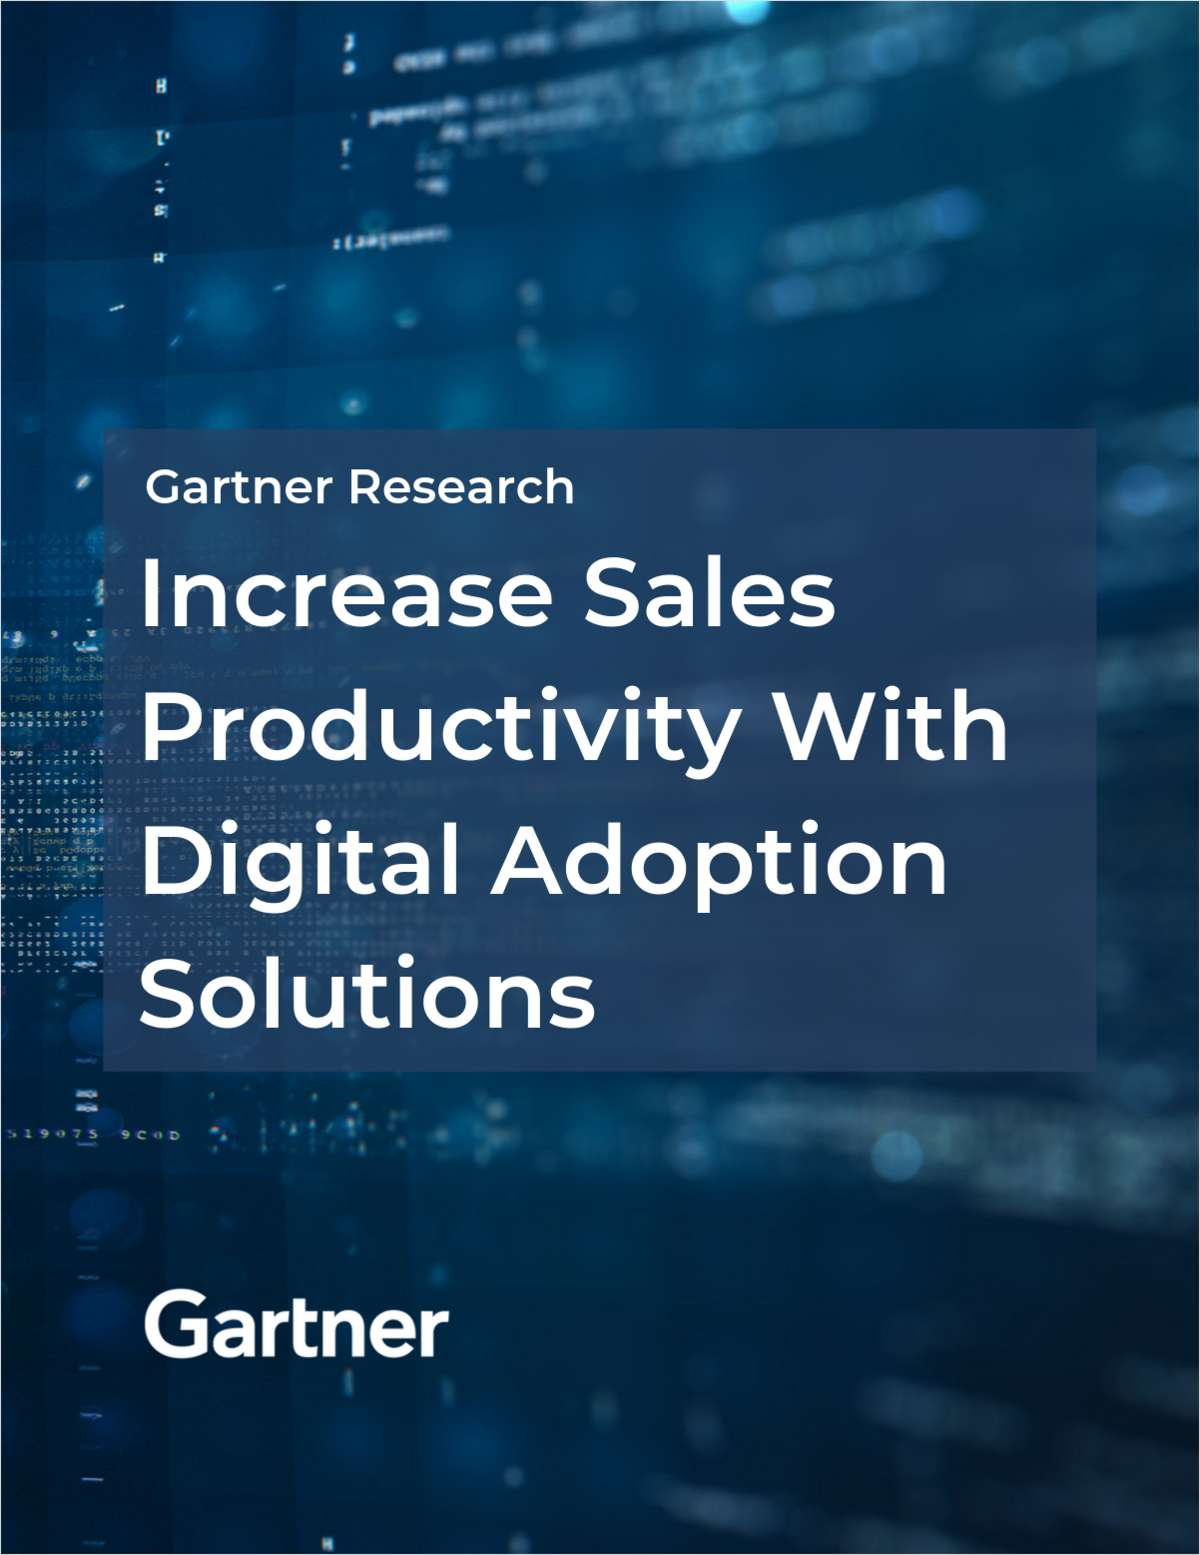 Gartner Research: Increase Sales Productivity with Digital Adoption Solutions